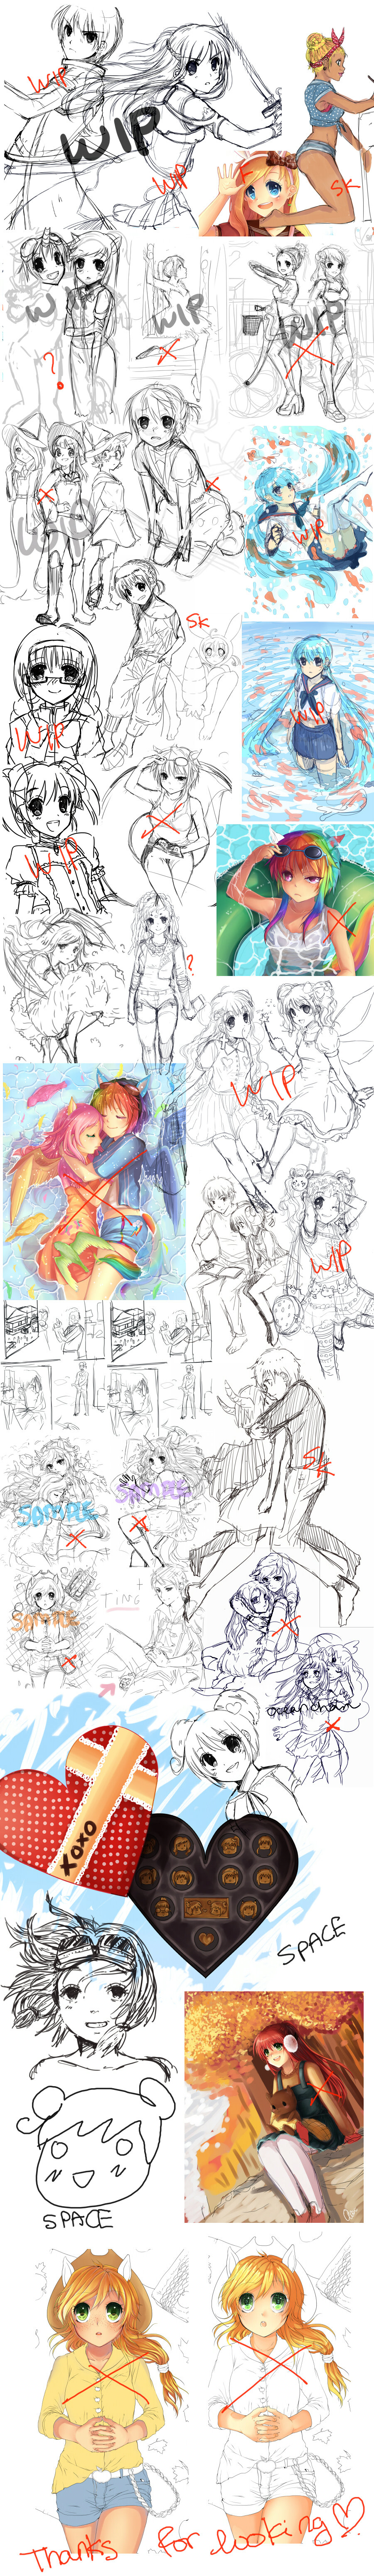 Sketch Dump 009 (WIPs and abandoned works) by oceantann